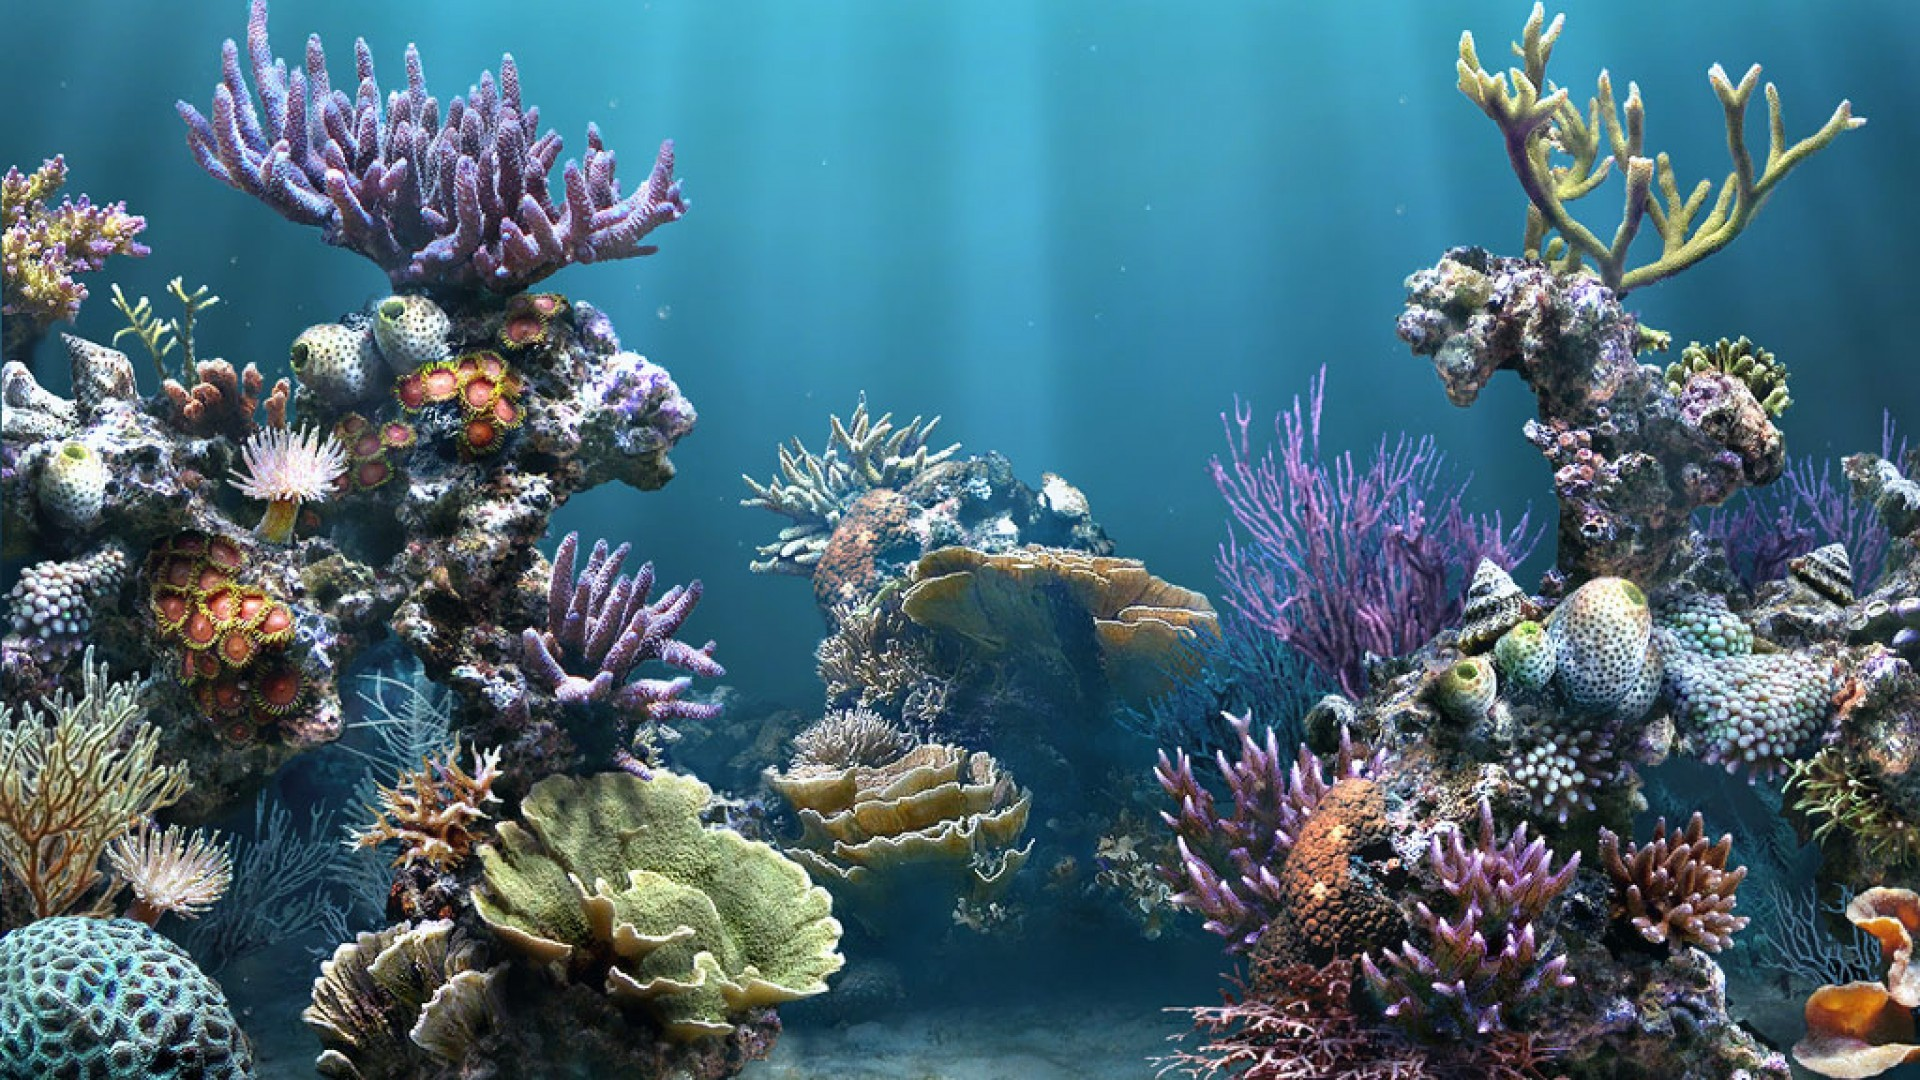 1920x1080 ... aquarium wallpaper free download for pc desktop live fish .